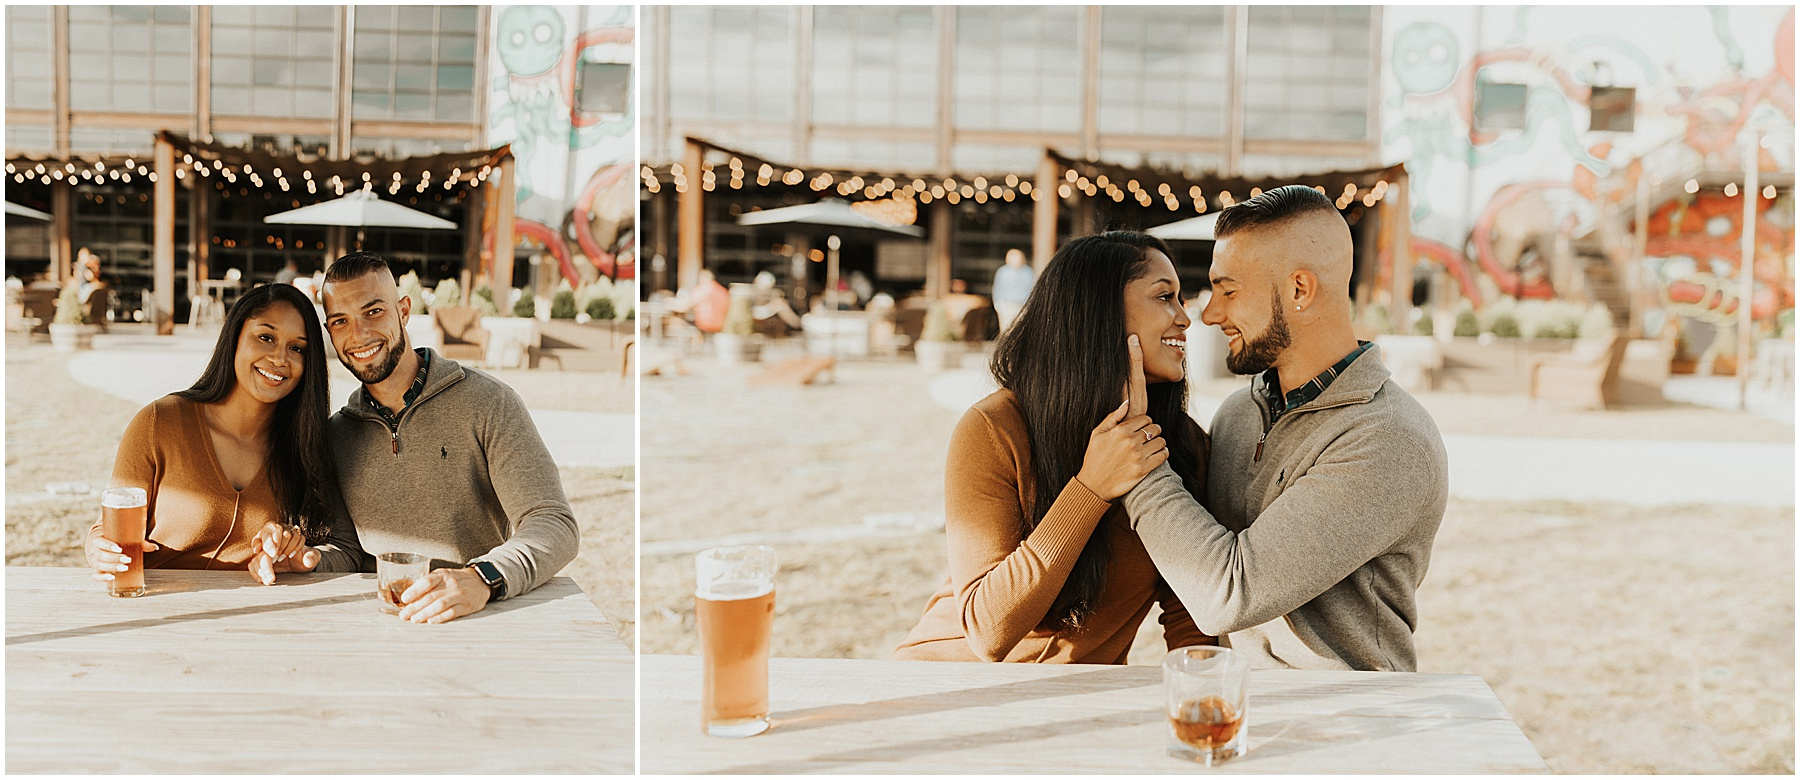 Unique and fun engagement session ideas_0009.jpg